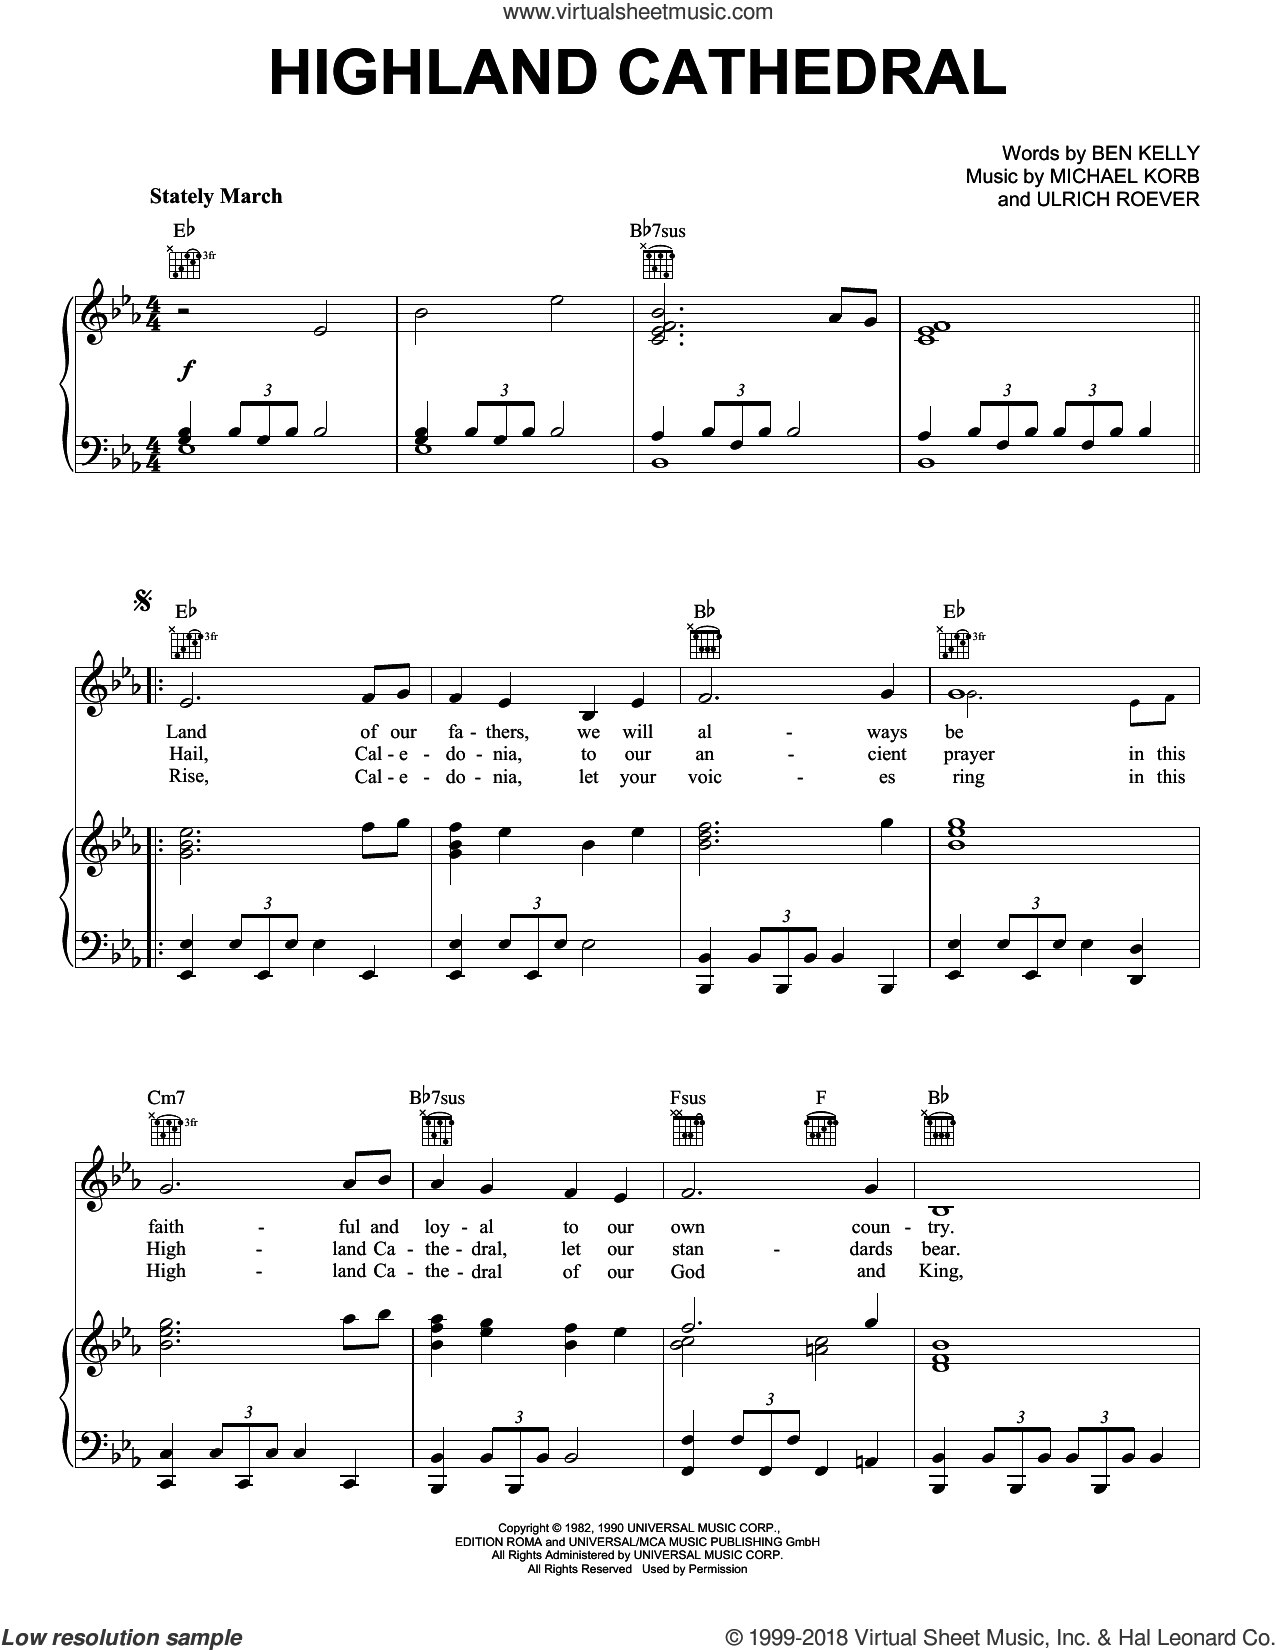 Highland Cathedral sheet music for voice, piano or guitar by Michael Korb, Ben Kelly and Ulrich Roever, intermediate skill level